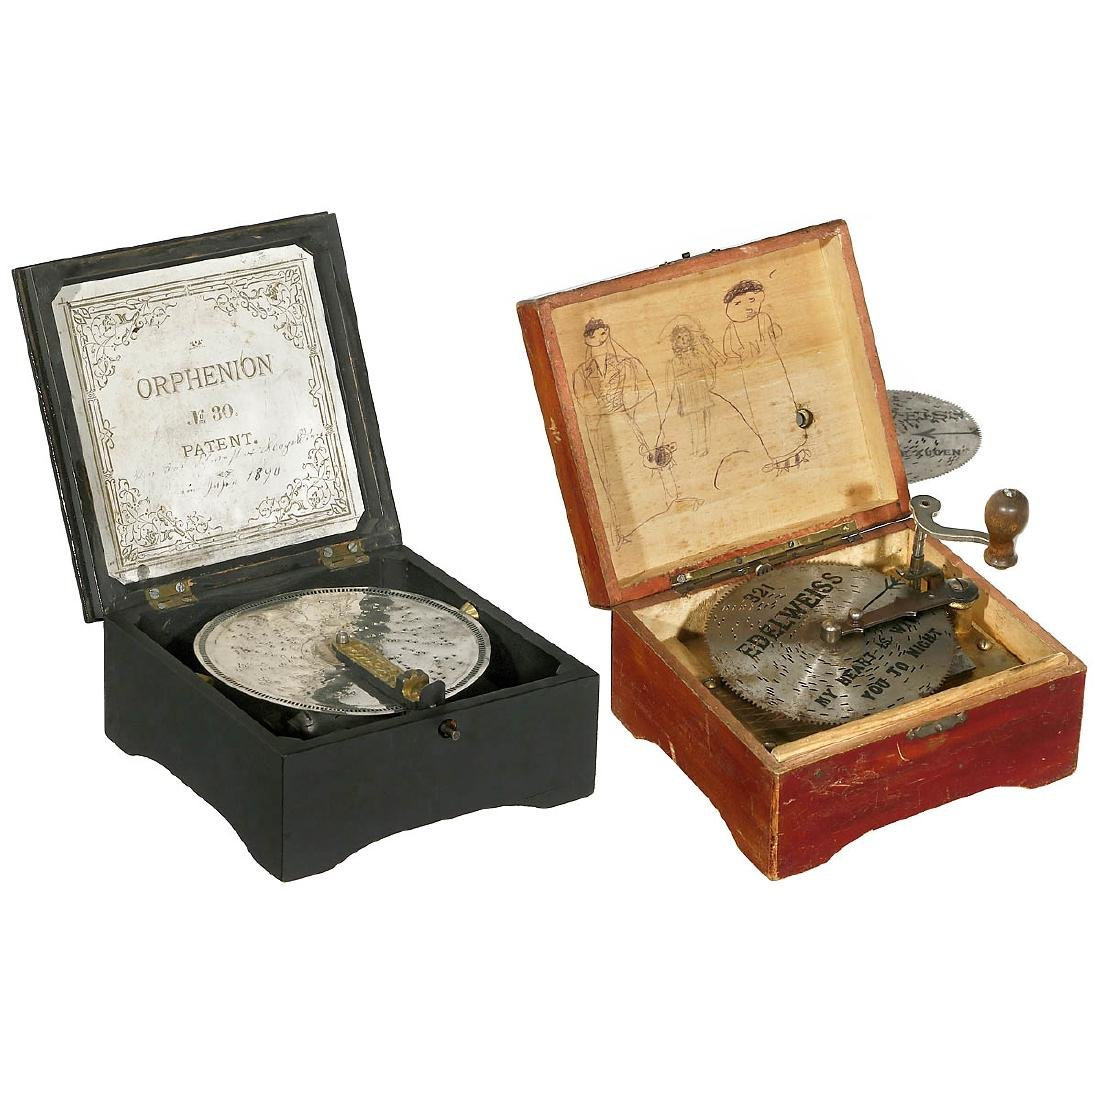 2 Small Manivelle Disc Musical Boxes, c. 1900